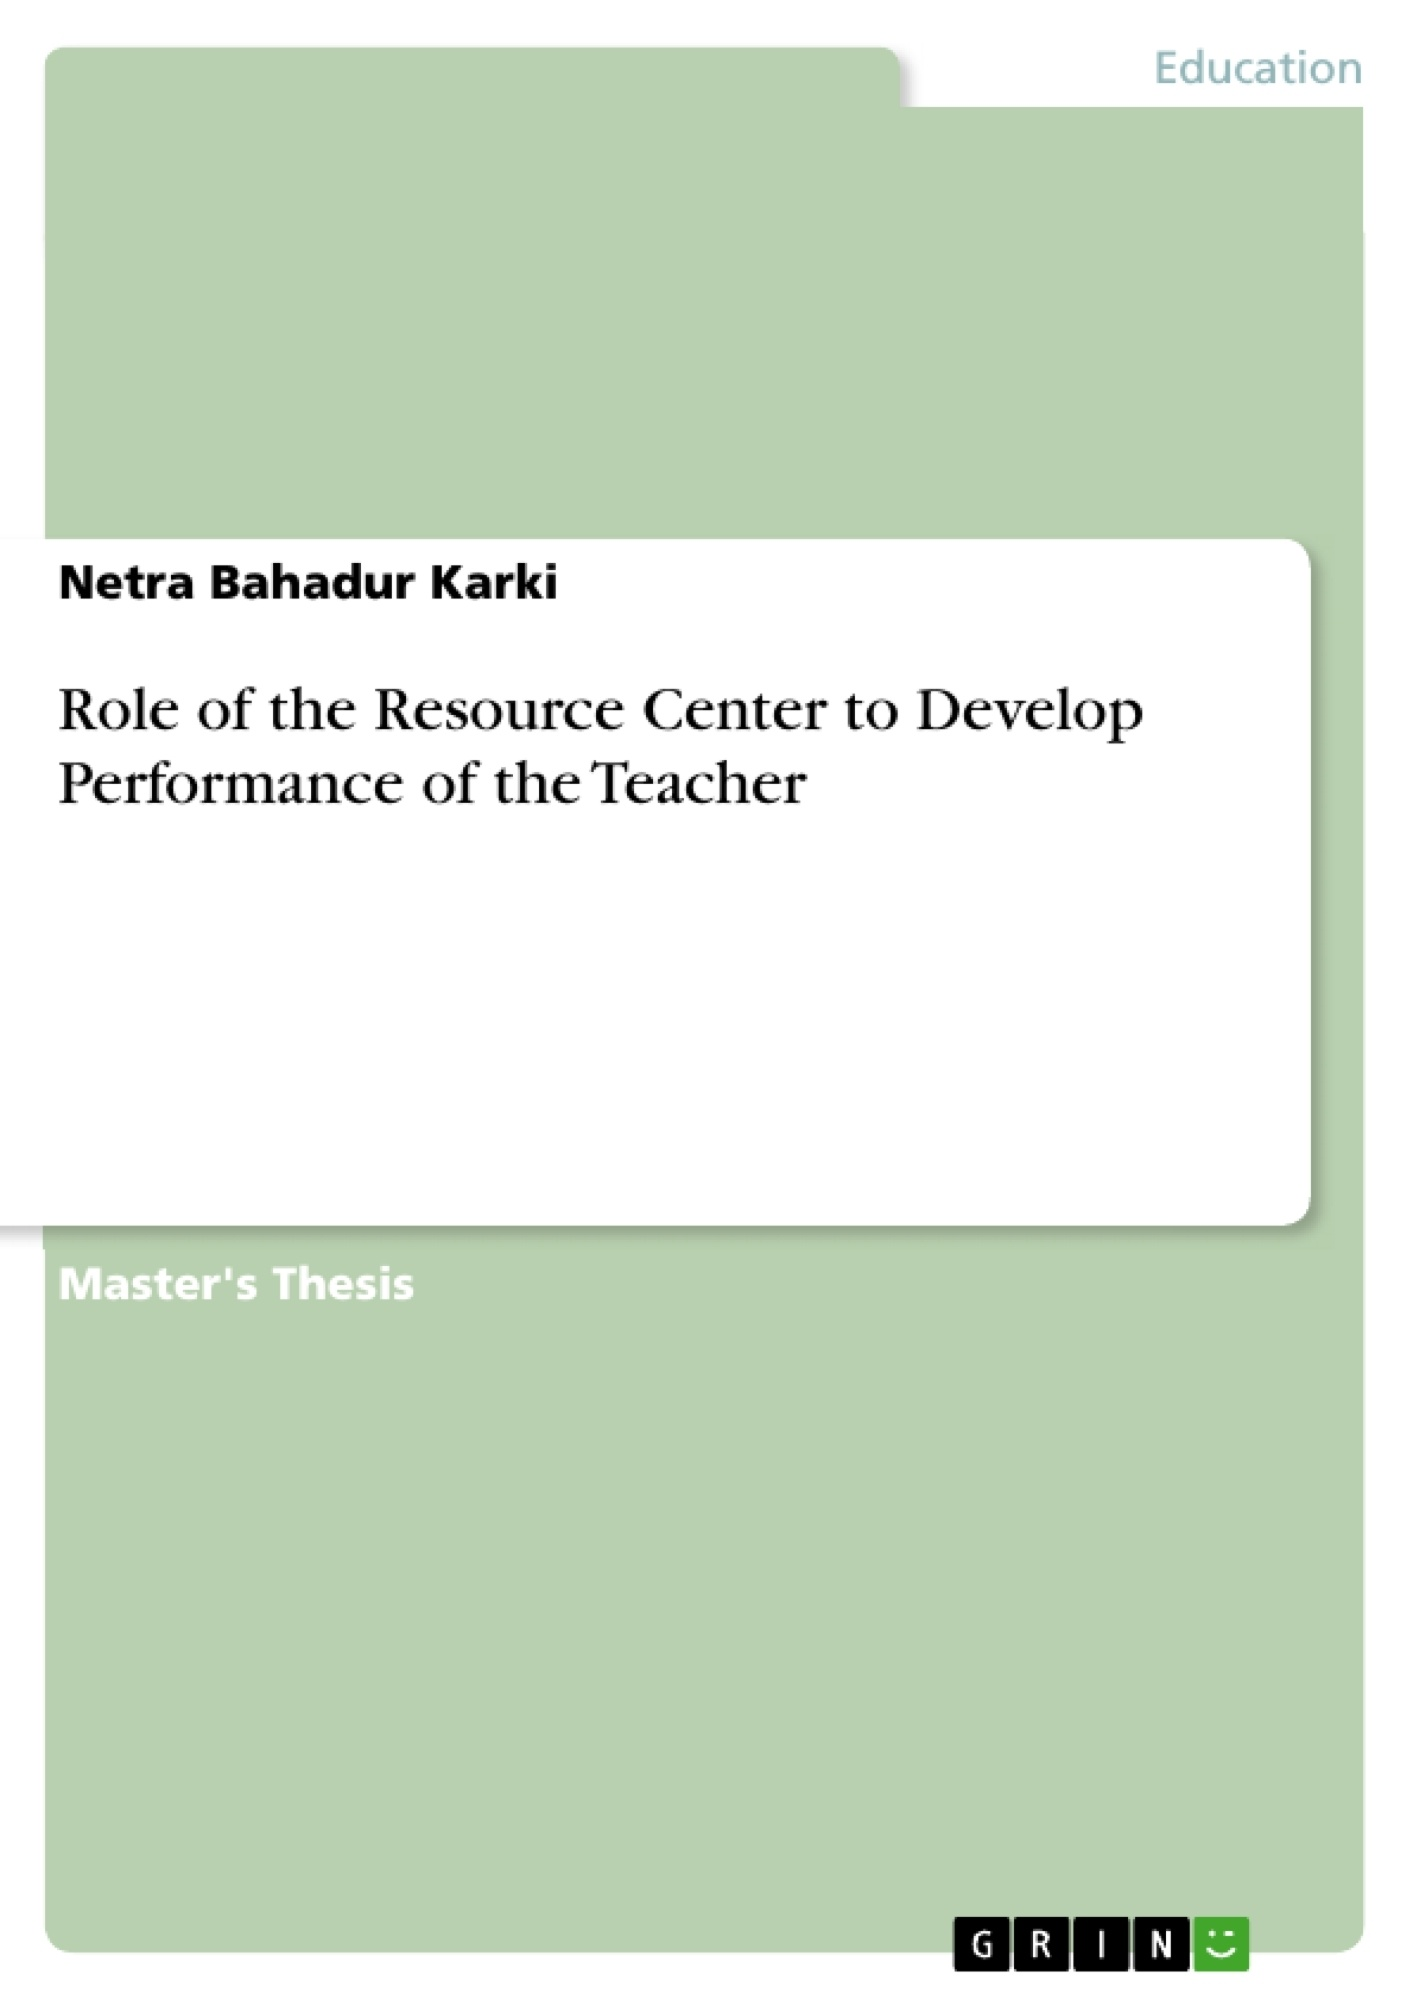 Title: Role of the Resource Center to Develop Performance of the Teacher